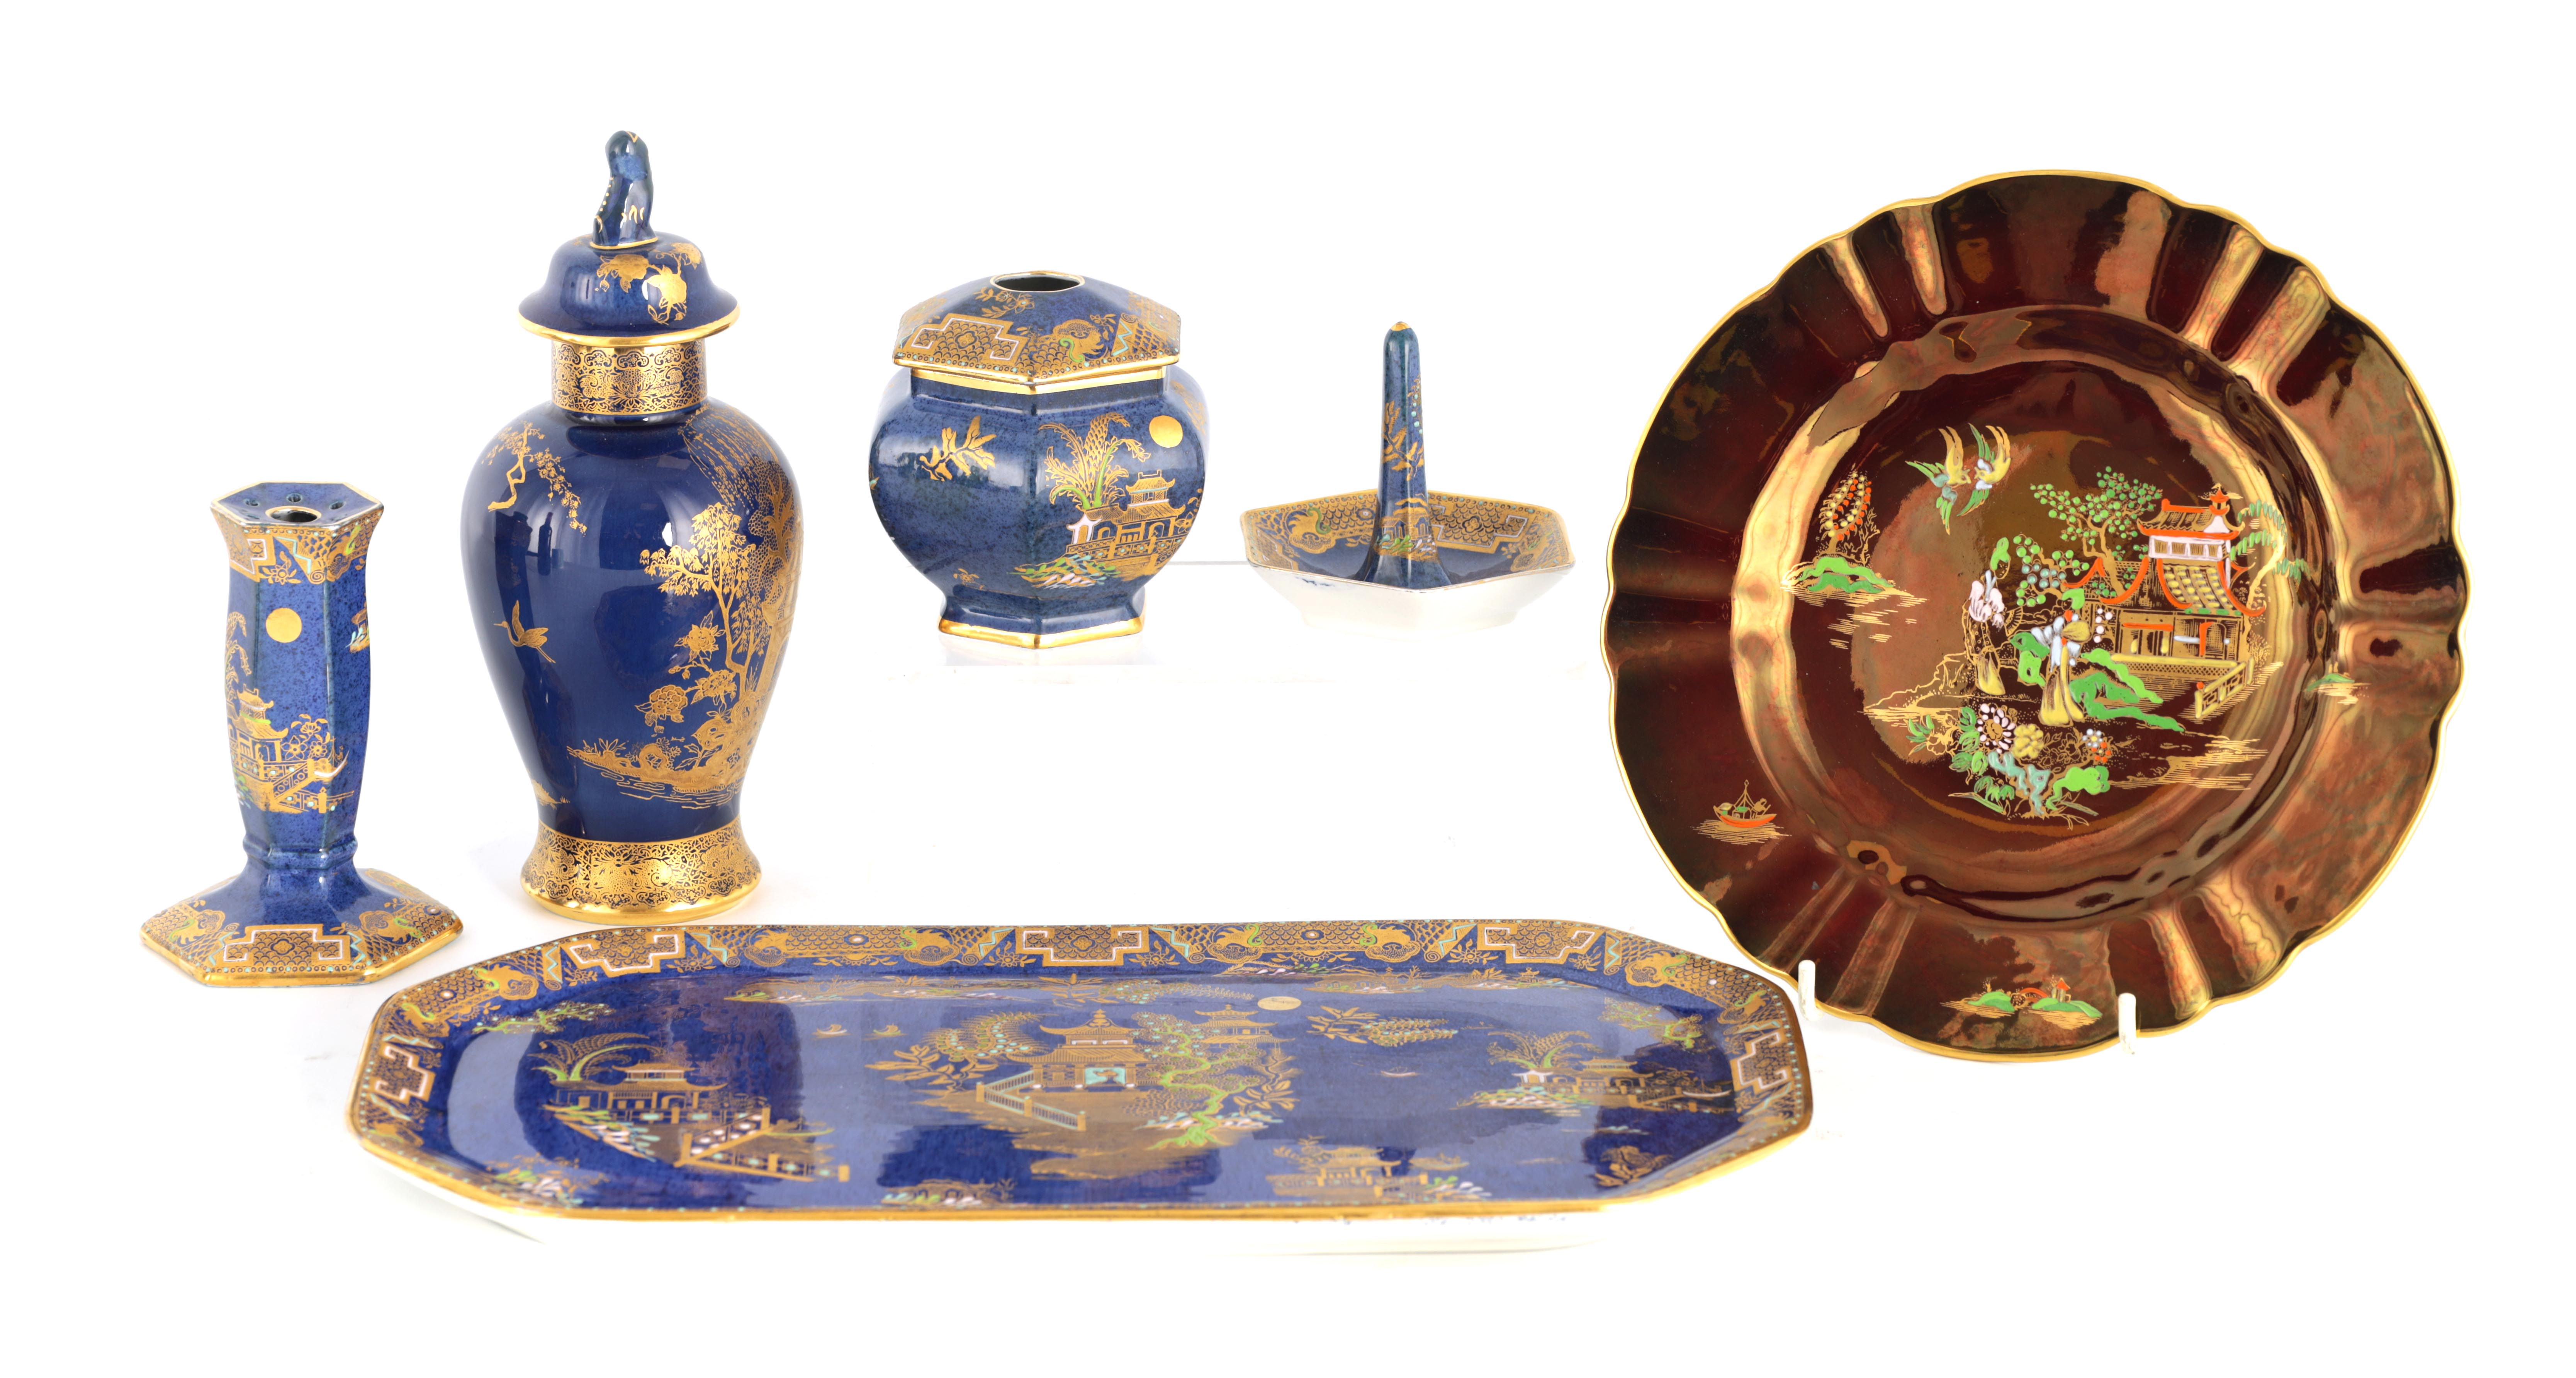 A CARLTON WARE FIVE PIECE DRESSING TABLE SET decorated in an oriental gilt pattern with pagodas